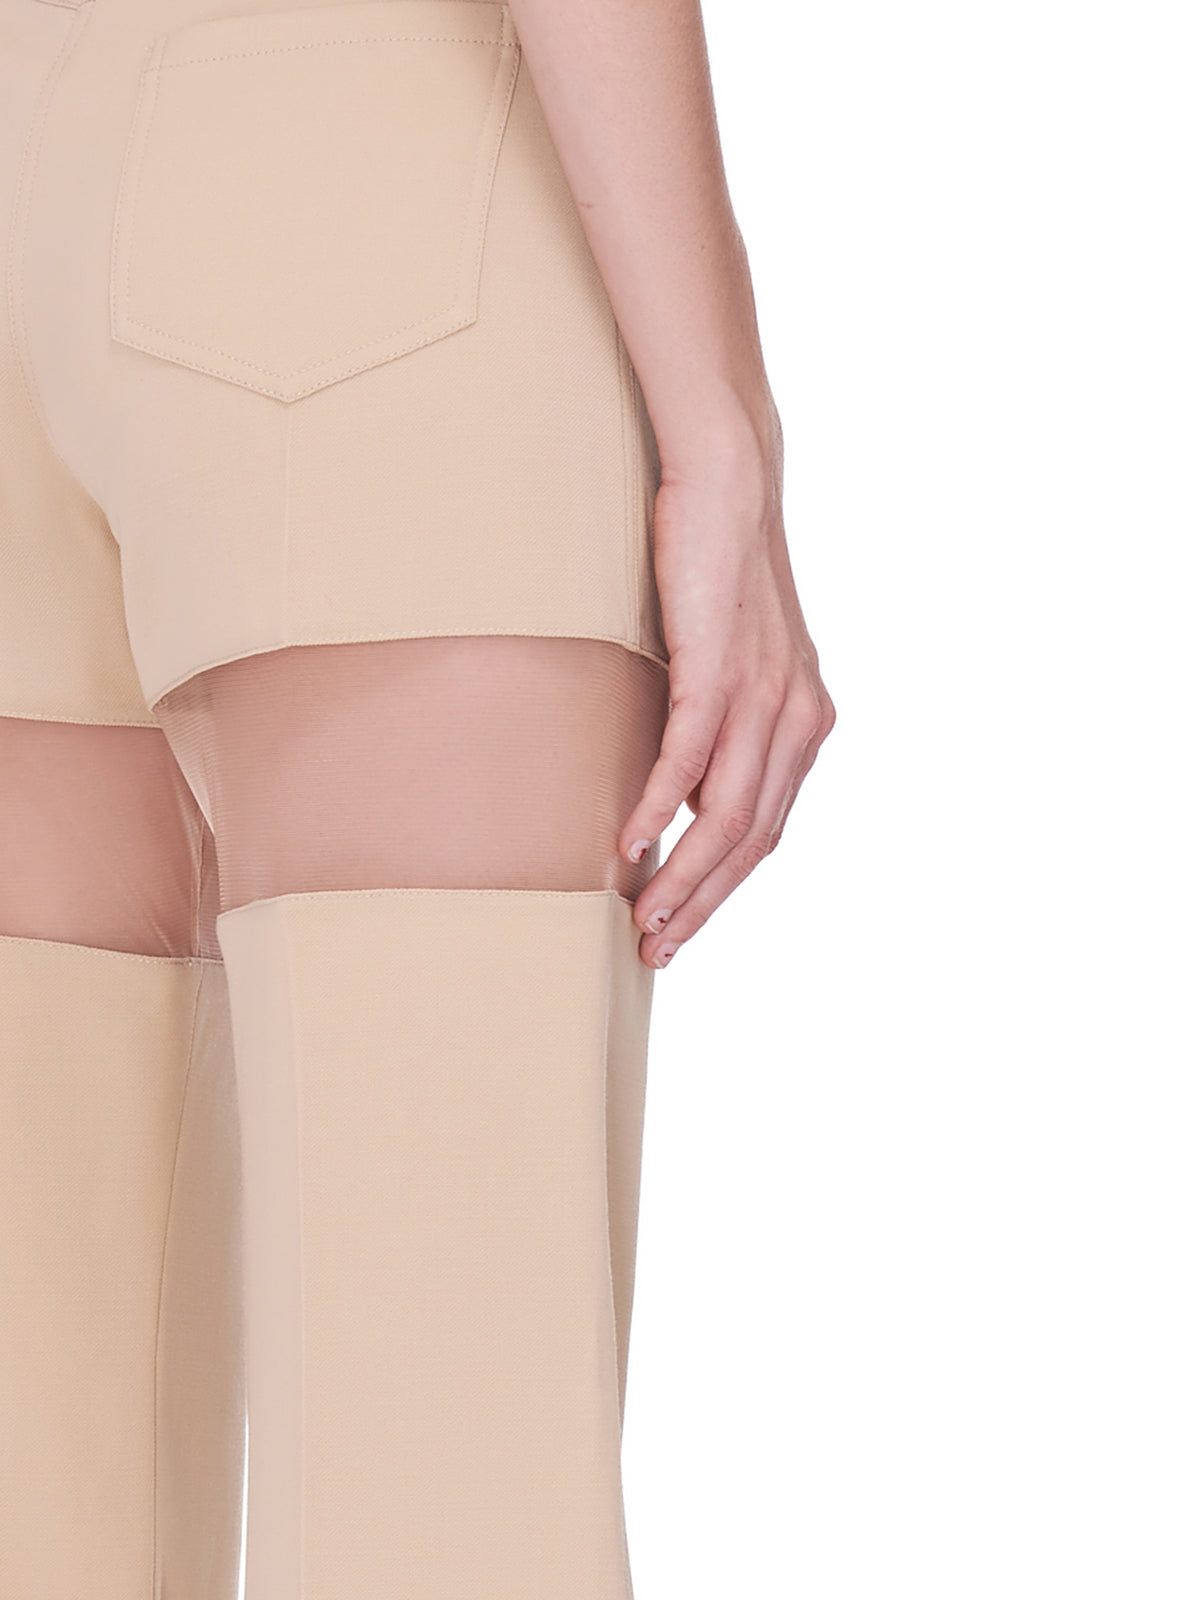 Segmented Trousers (1PA0331180-BEIGE-NUDE)